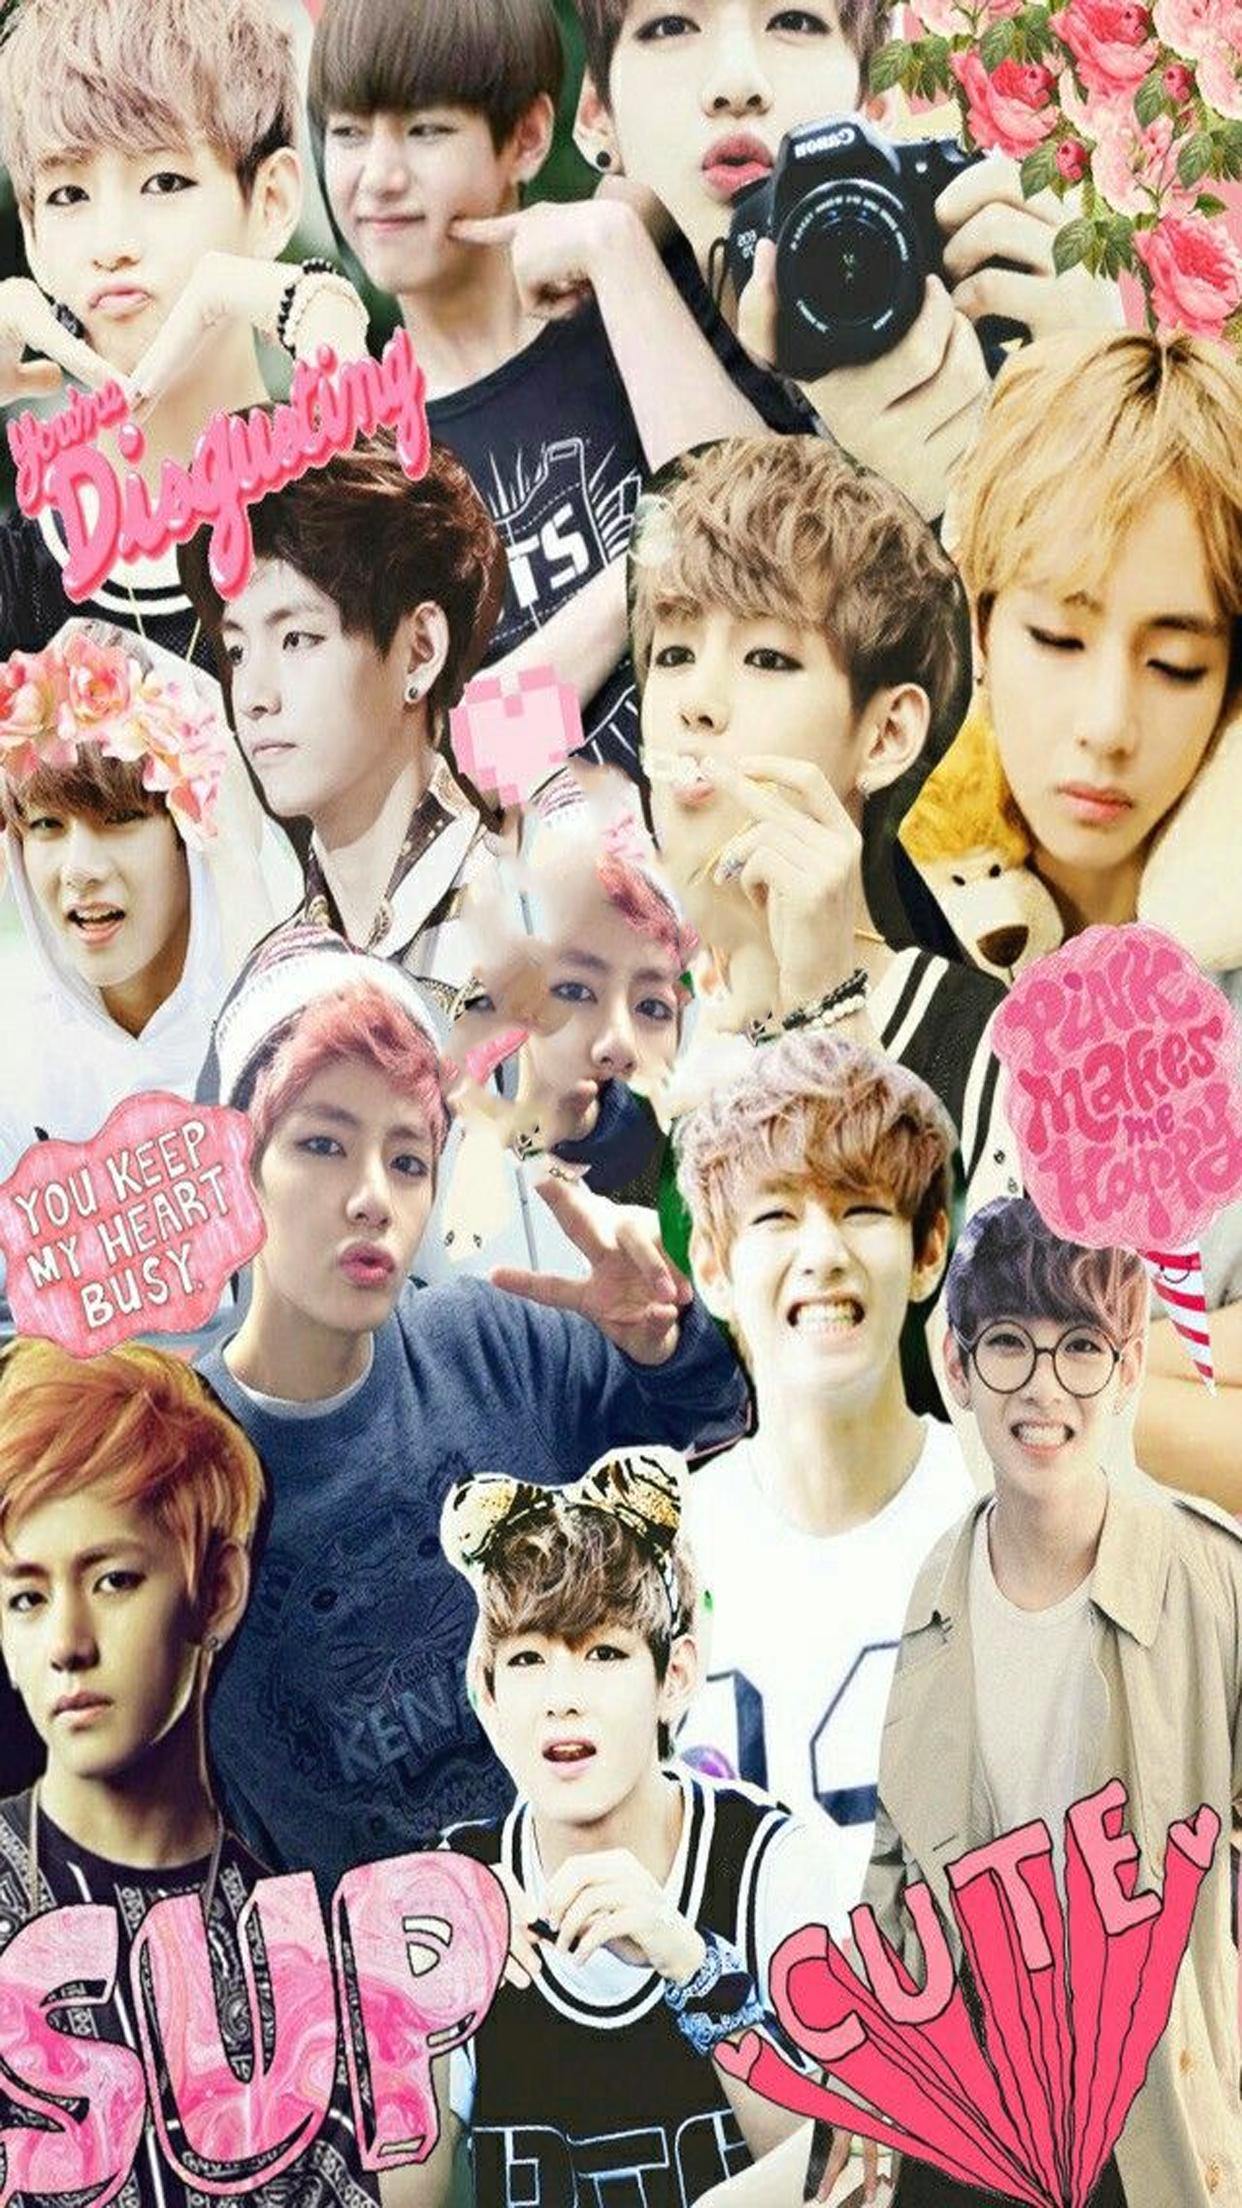 Bts Kpop Wallpapers 2018 Hd For Android Apk Download